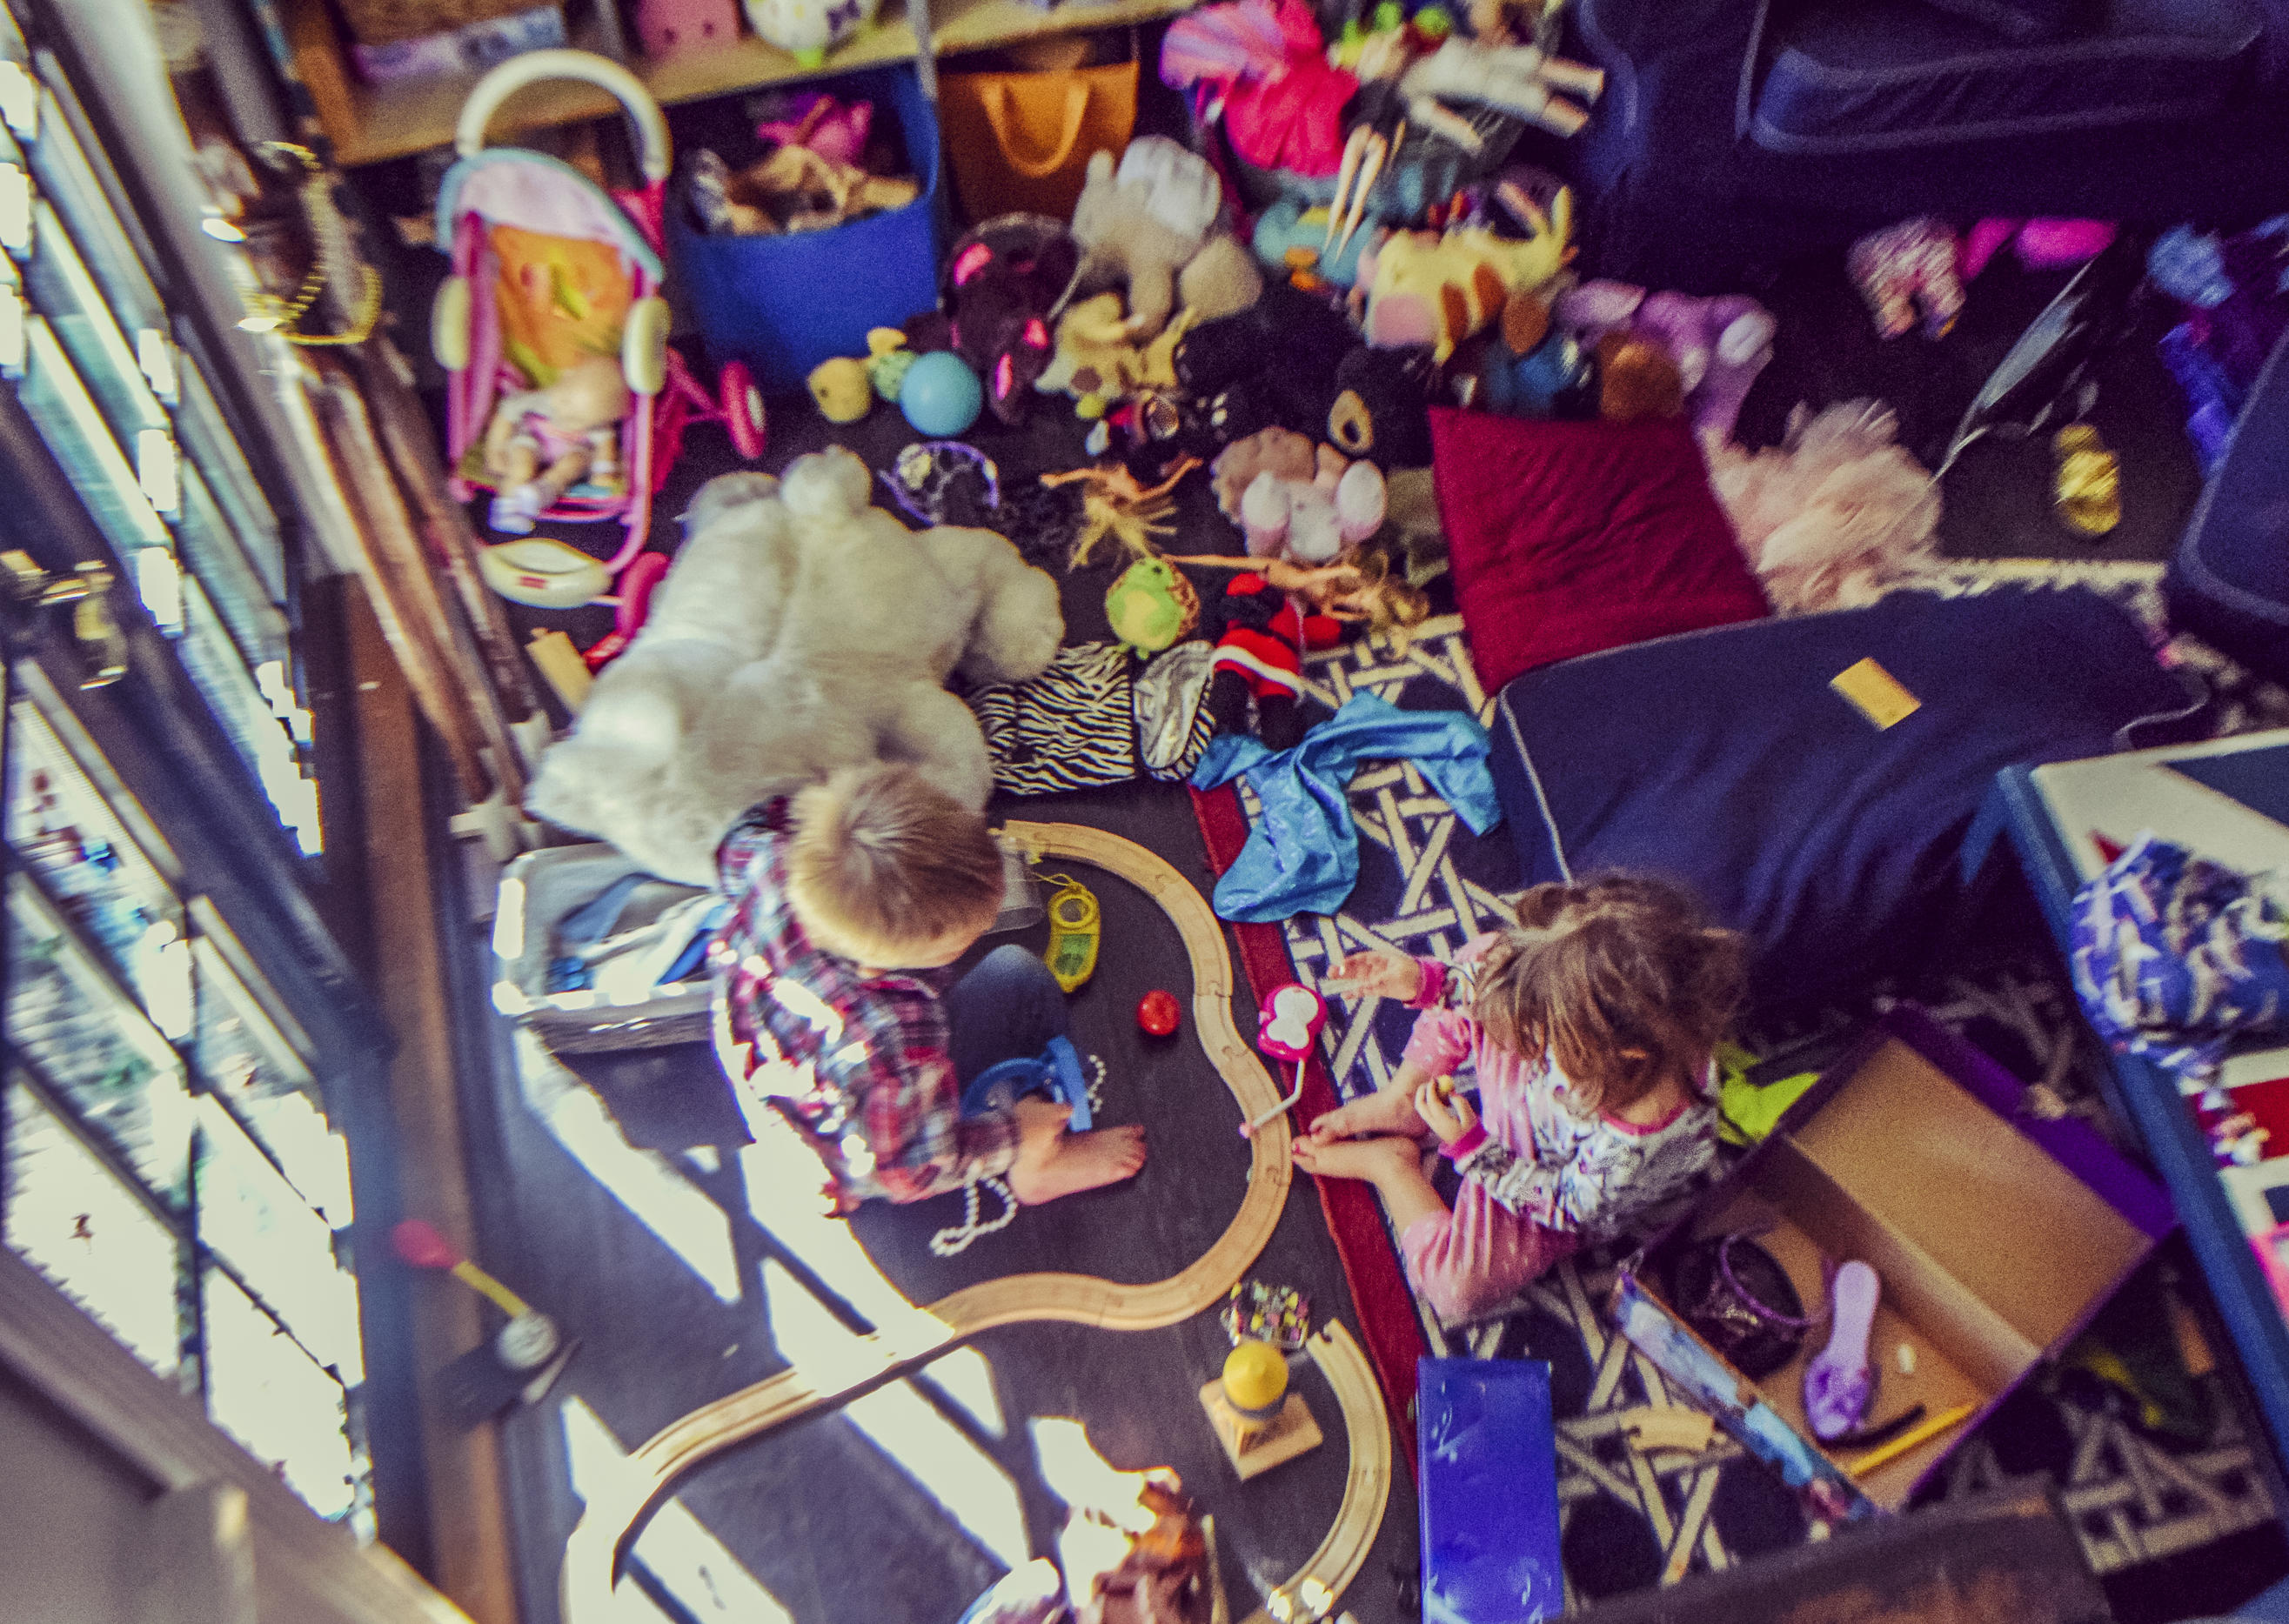 kids playing in a toy filled playroom